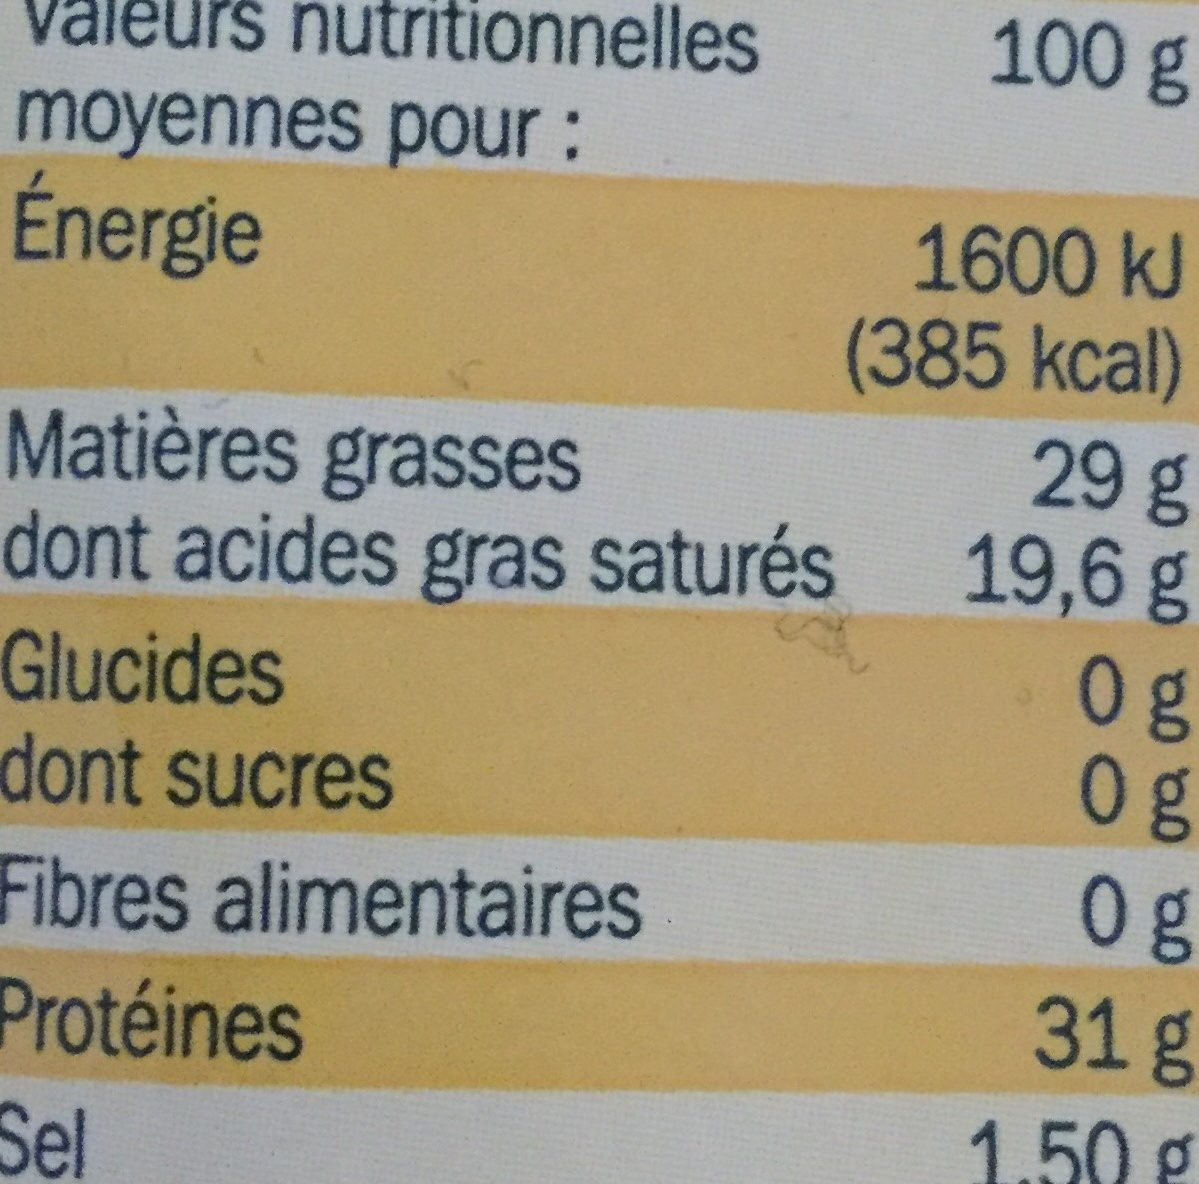 Il grattugiato 29% Mat. Gr. - Nutrition facts - fr